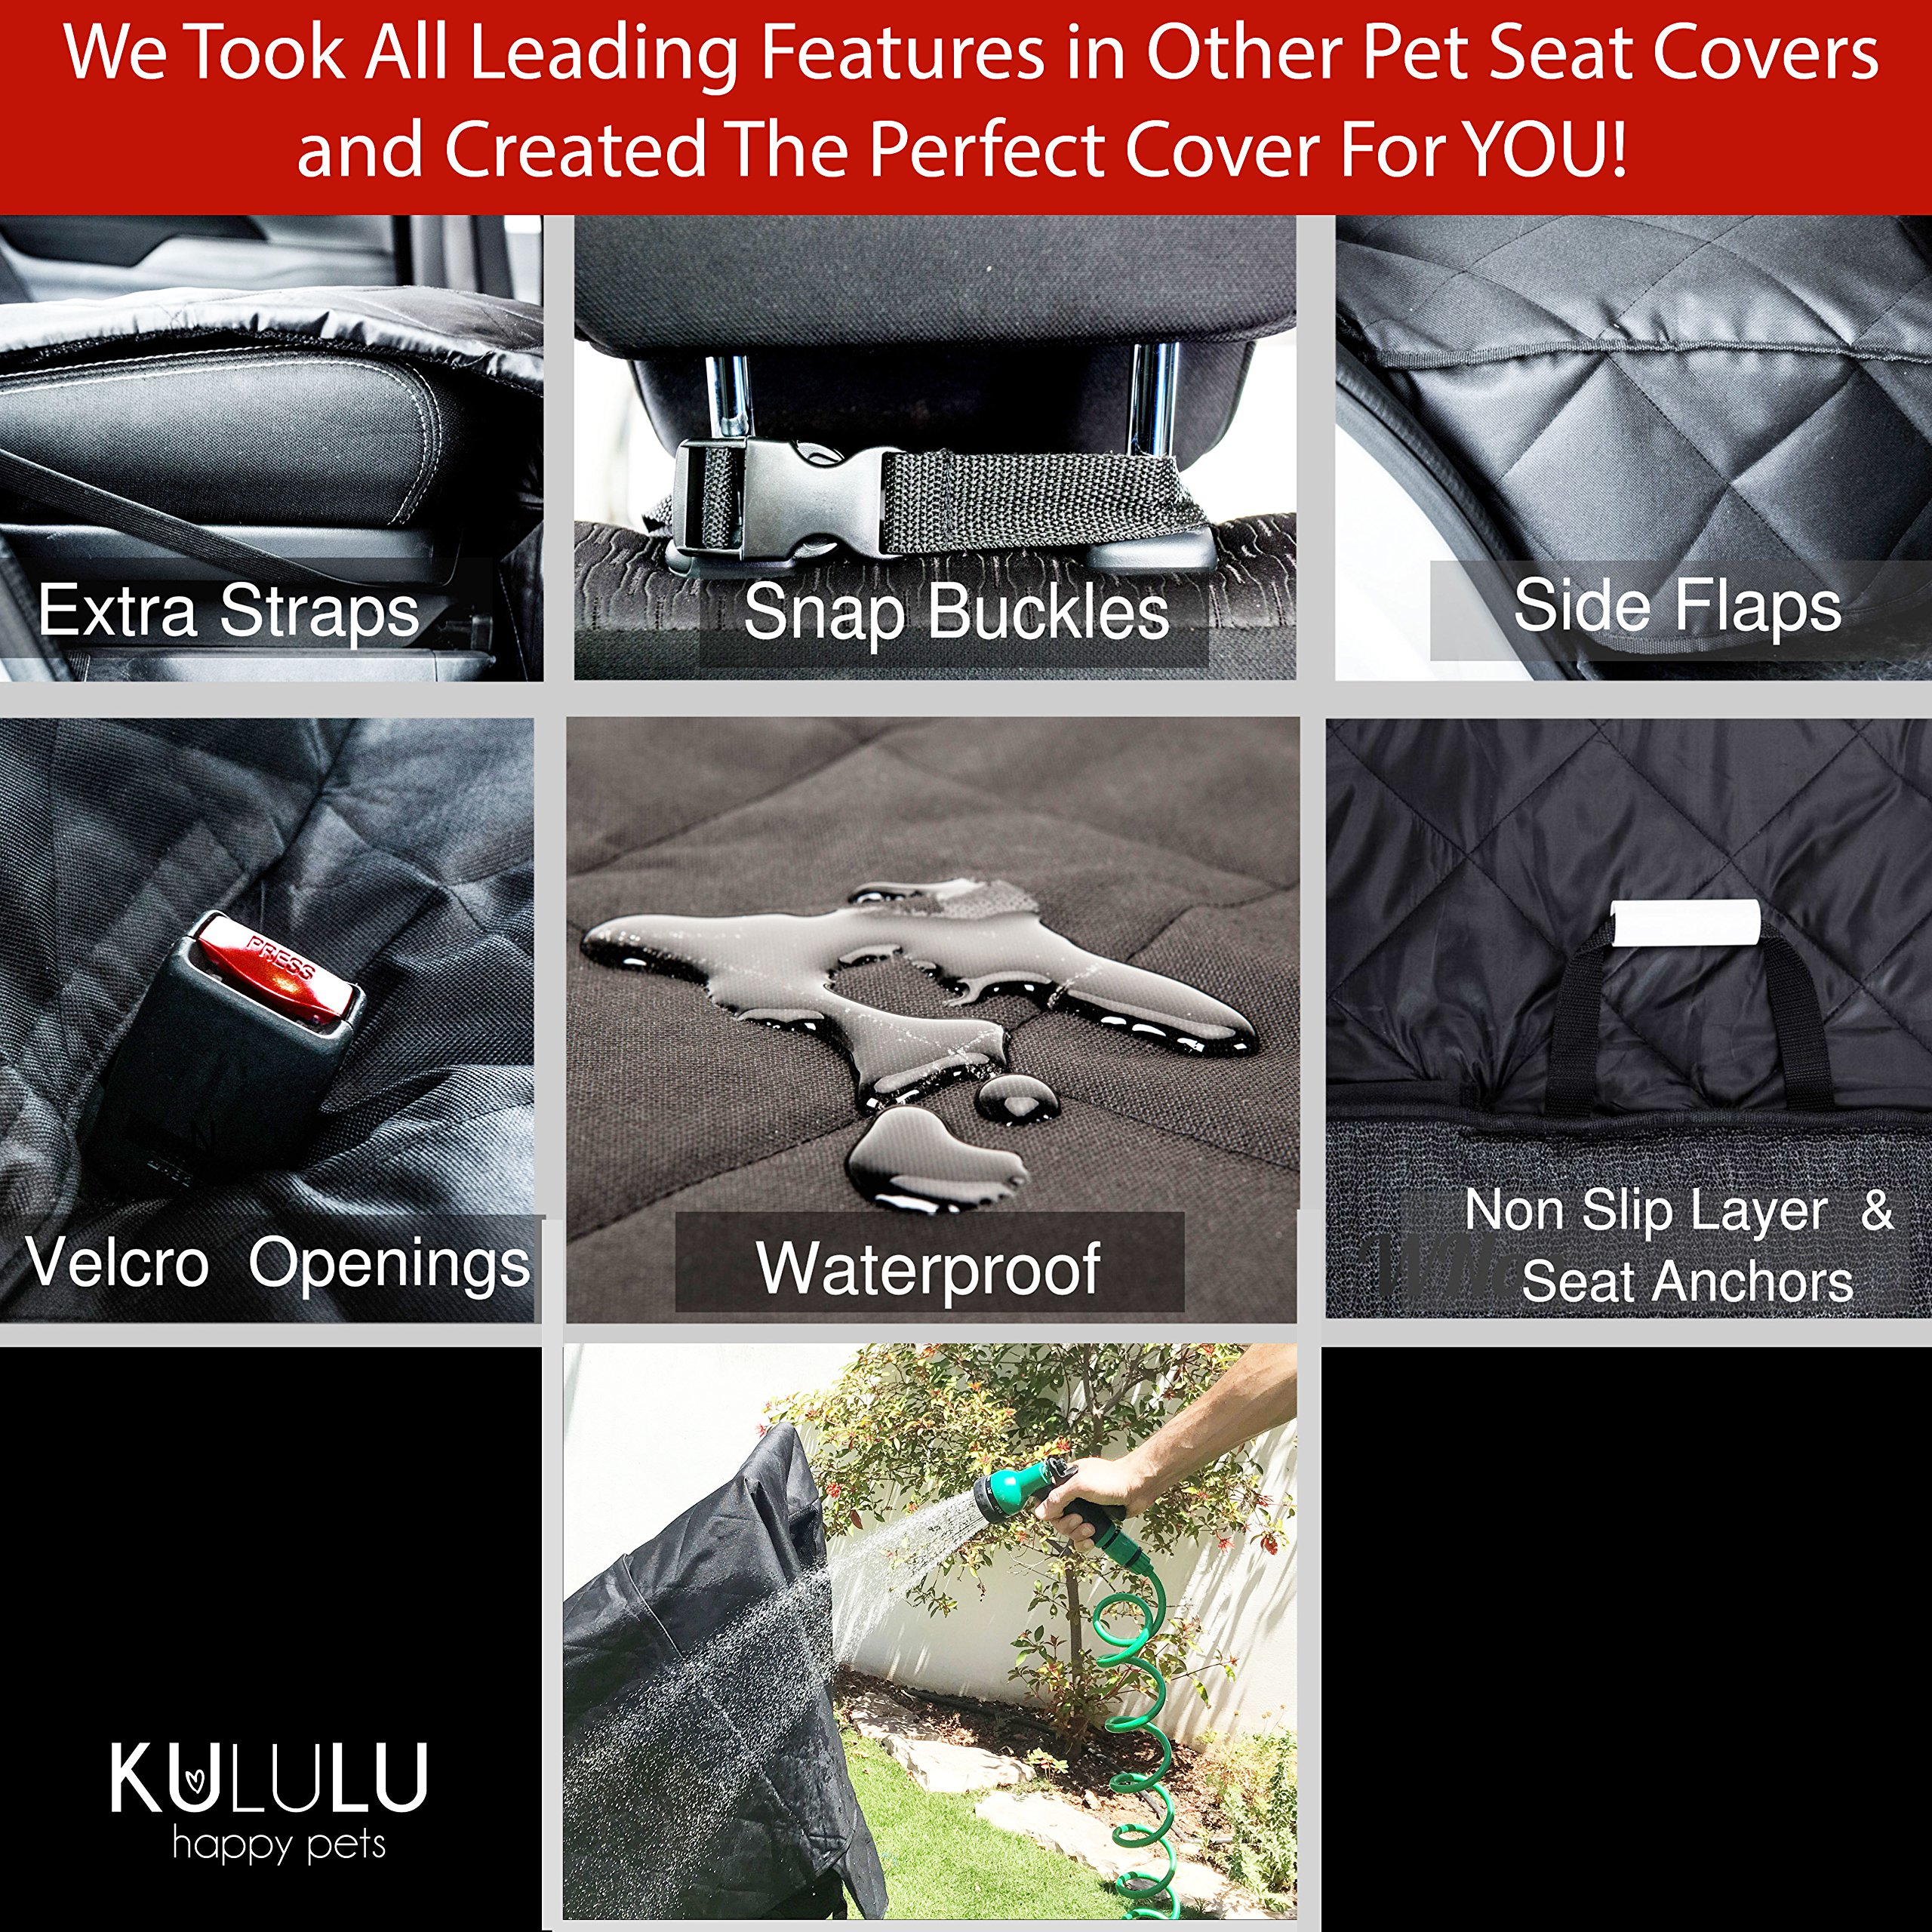 PREMIUM XL Dog Car Seat Cover Hammock Style And Cargo Liner For Cars, Trucks And Suv's. The Original Design You Can See Your Pet & Your Pet Sees You with the ClearView Window- Keeps Your Pet Calm. by Kululu (Image #4)